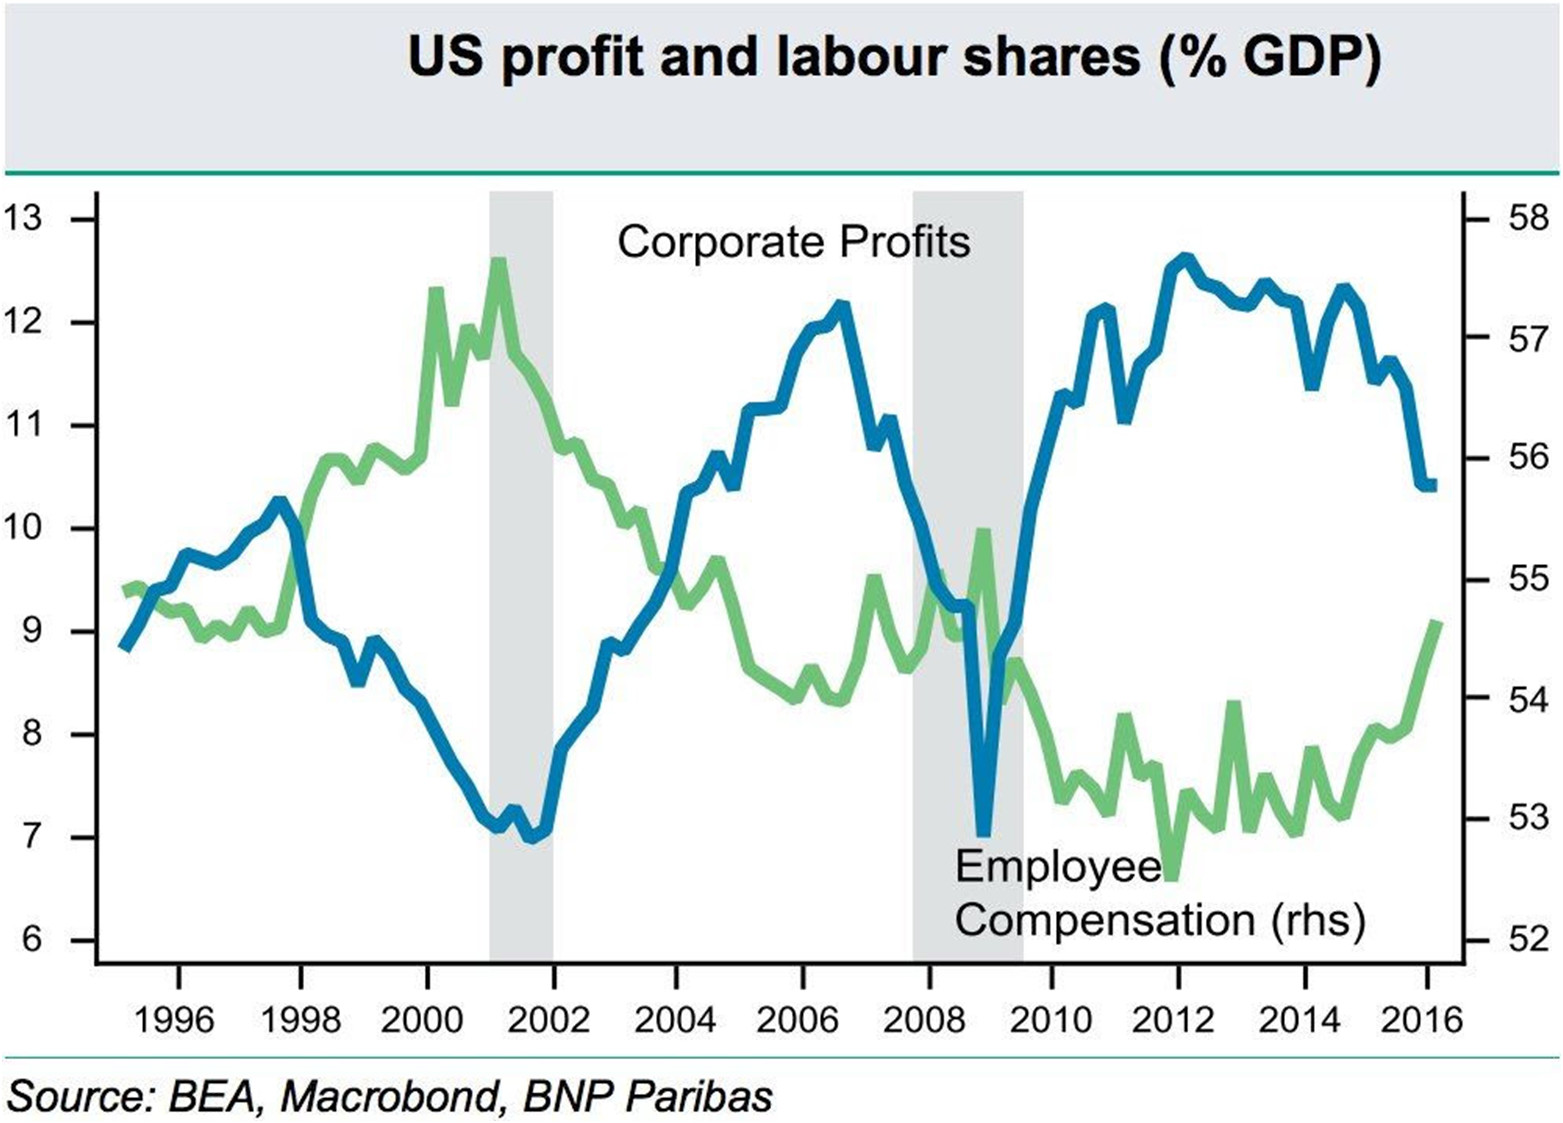 US profit and labour shares